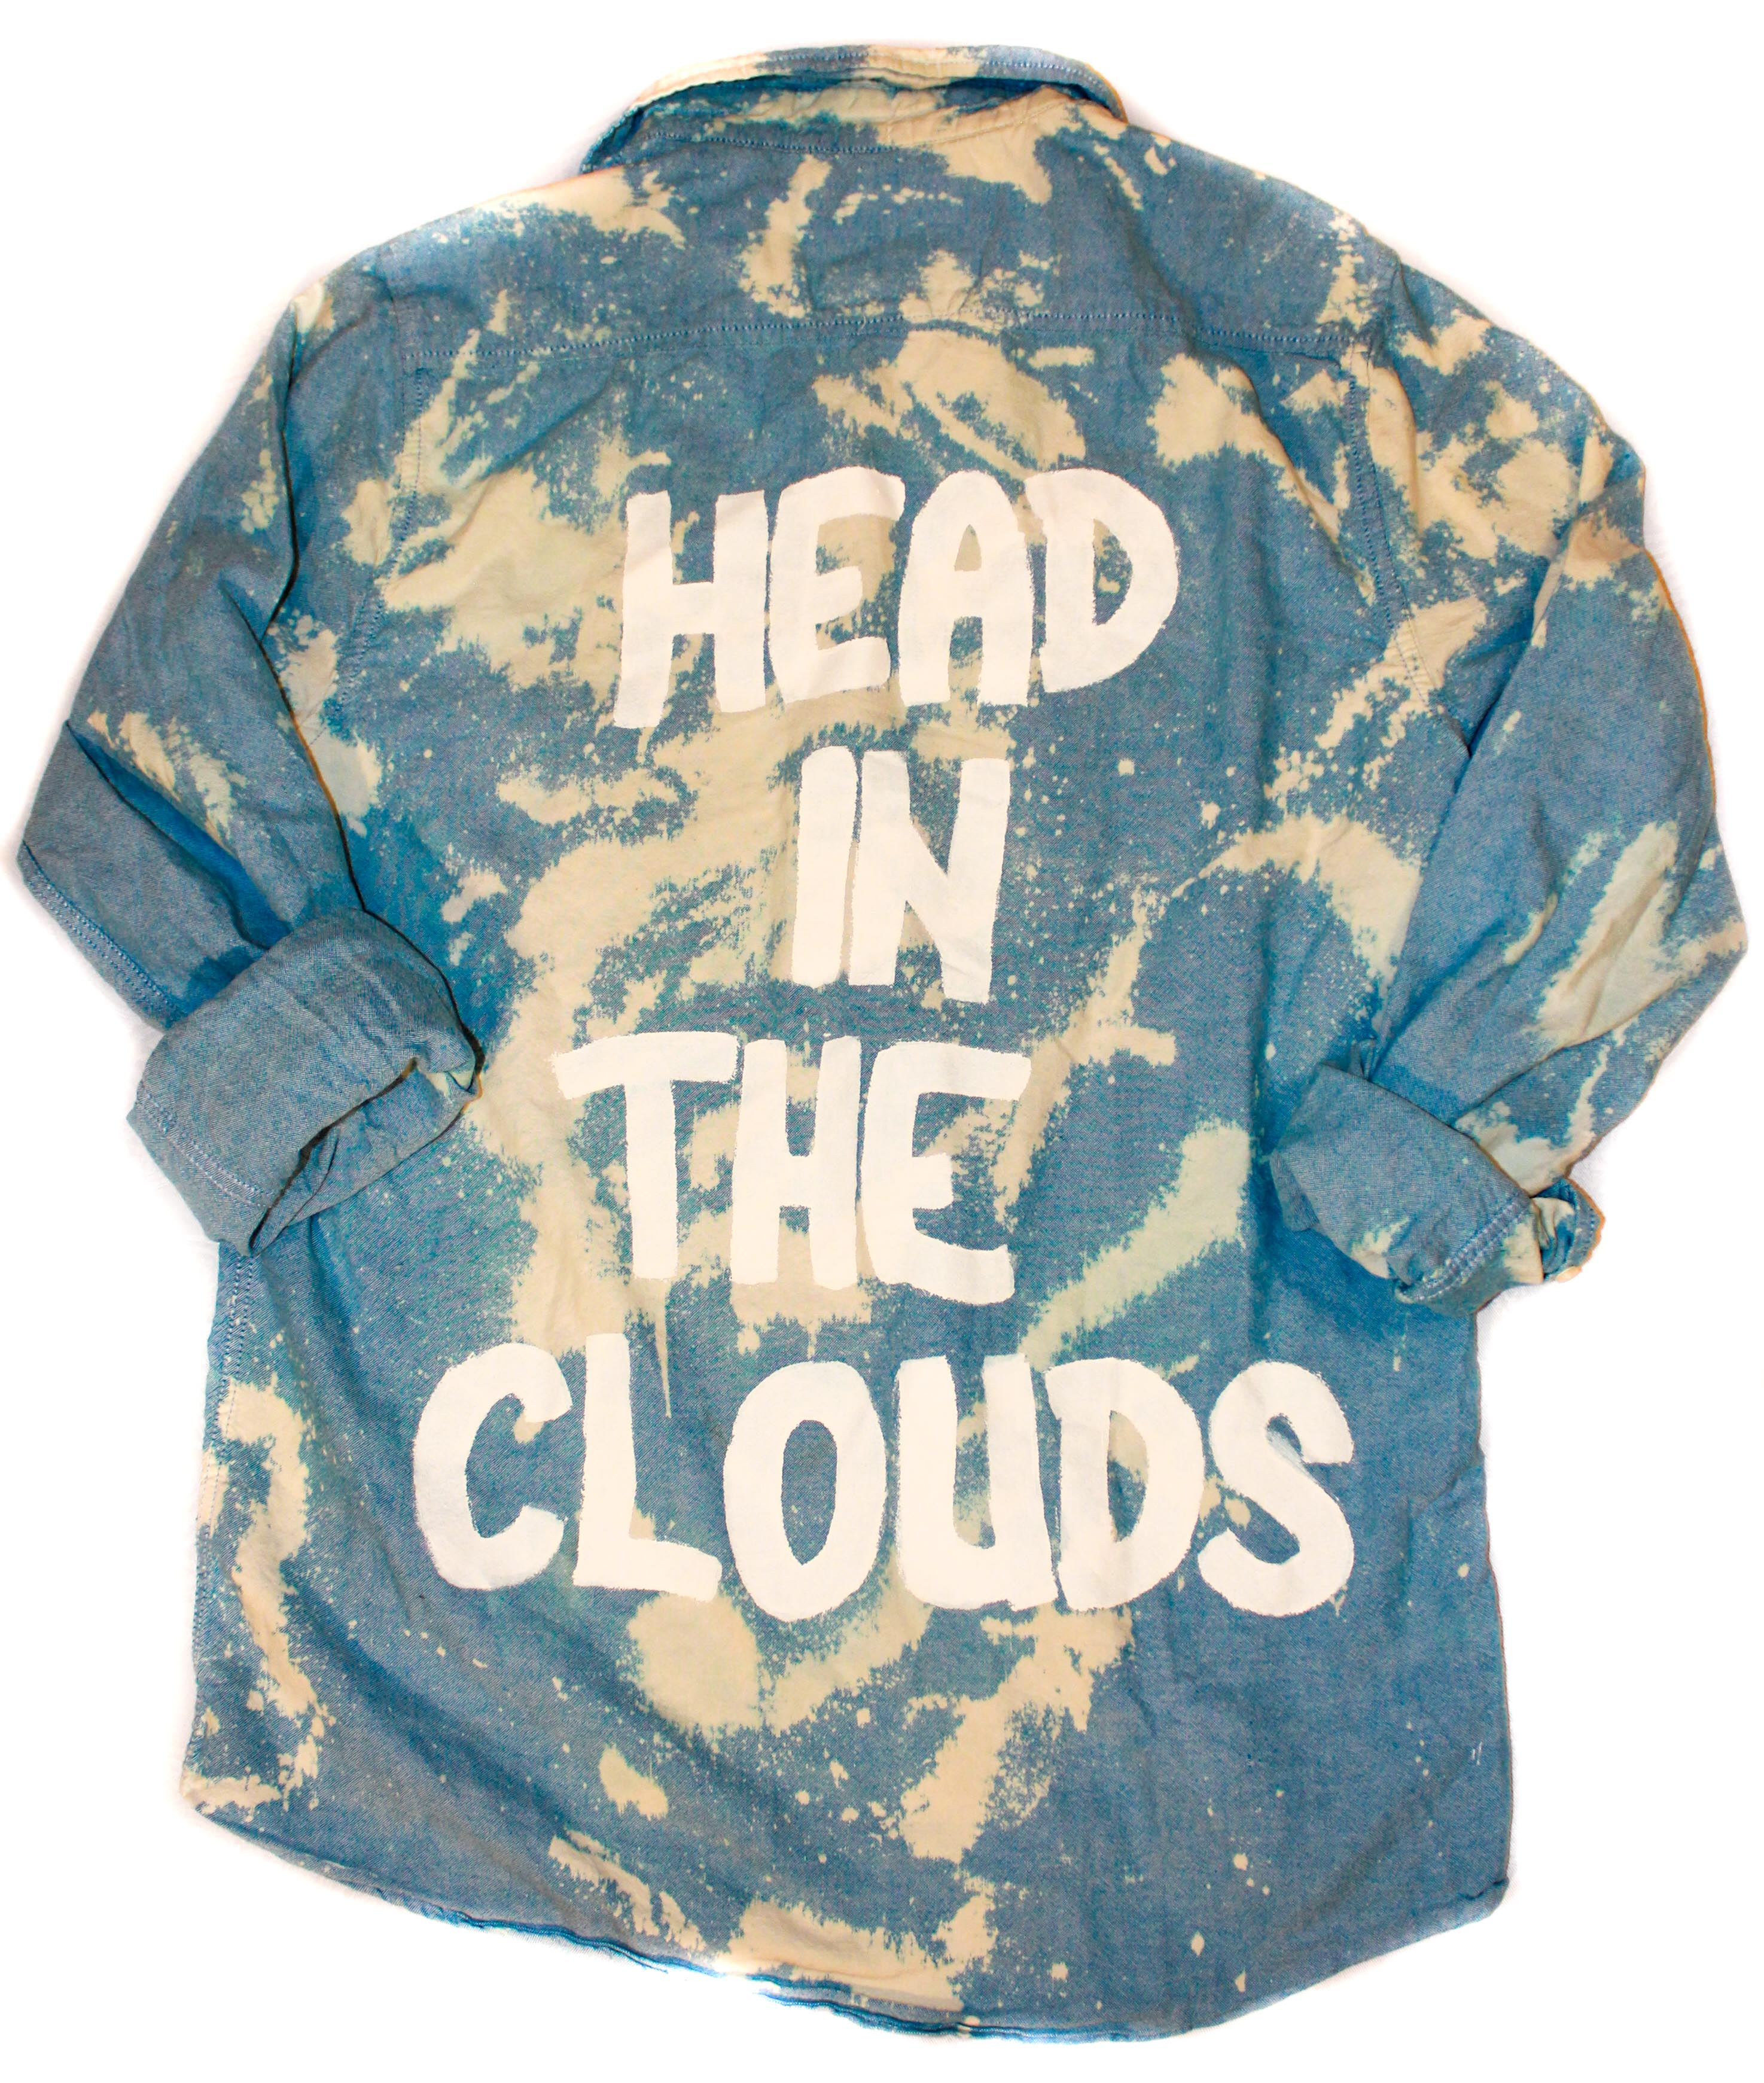 Head Up In the Clouds - Large